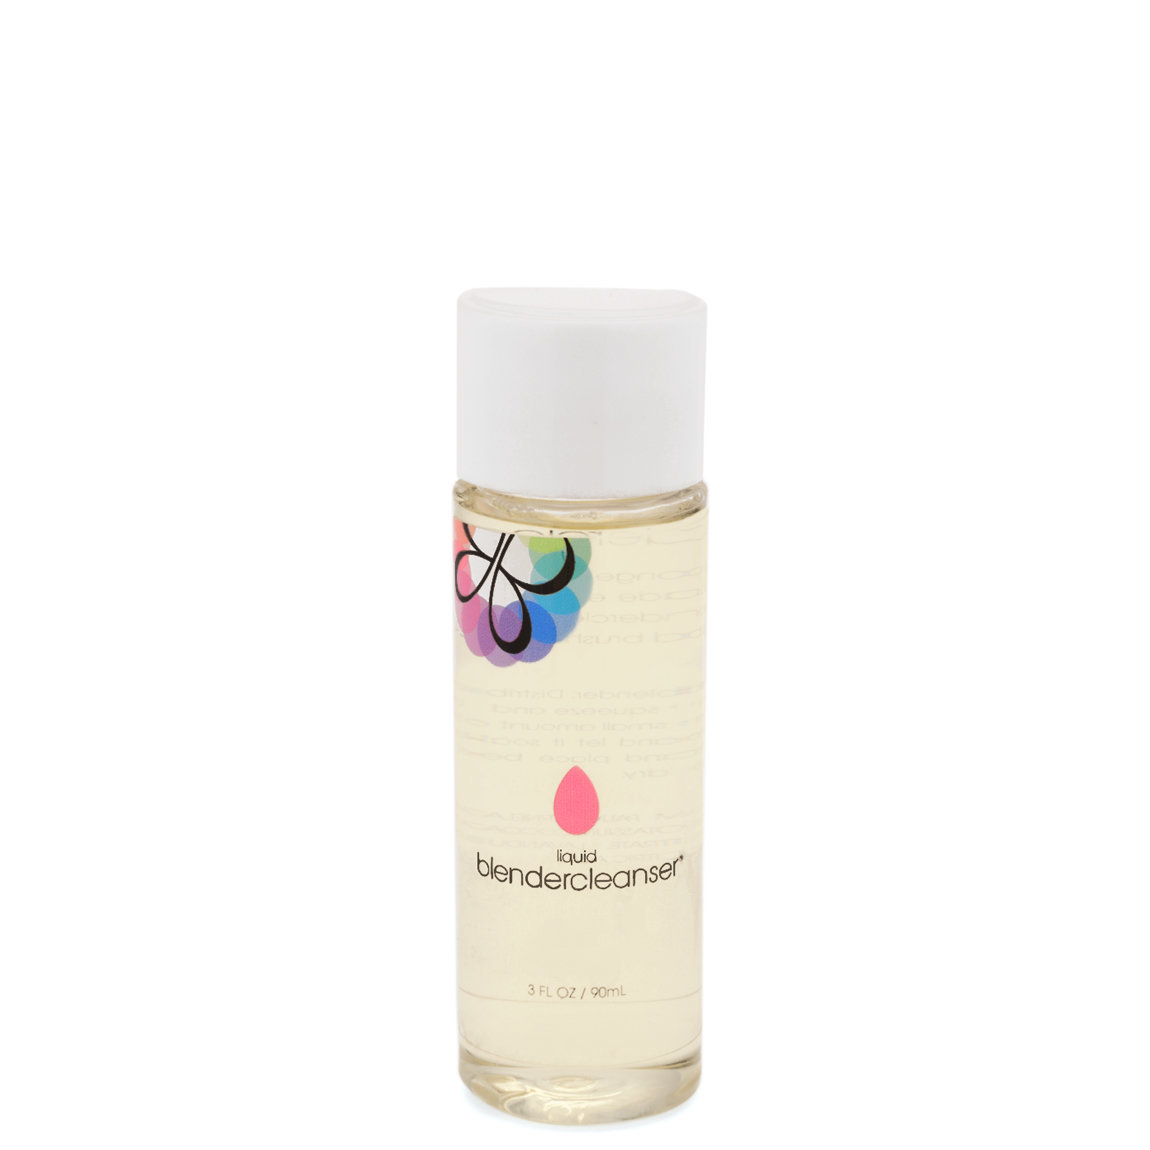 beautyblender liquid blendercleanser 3 oz product smear.